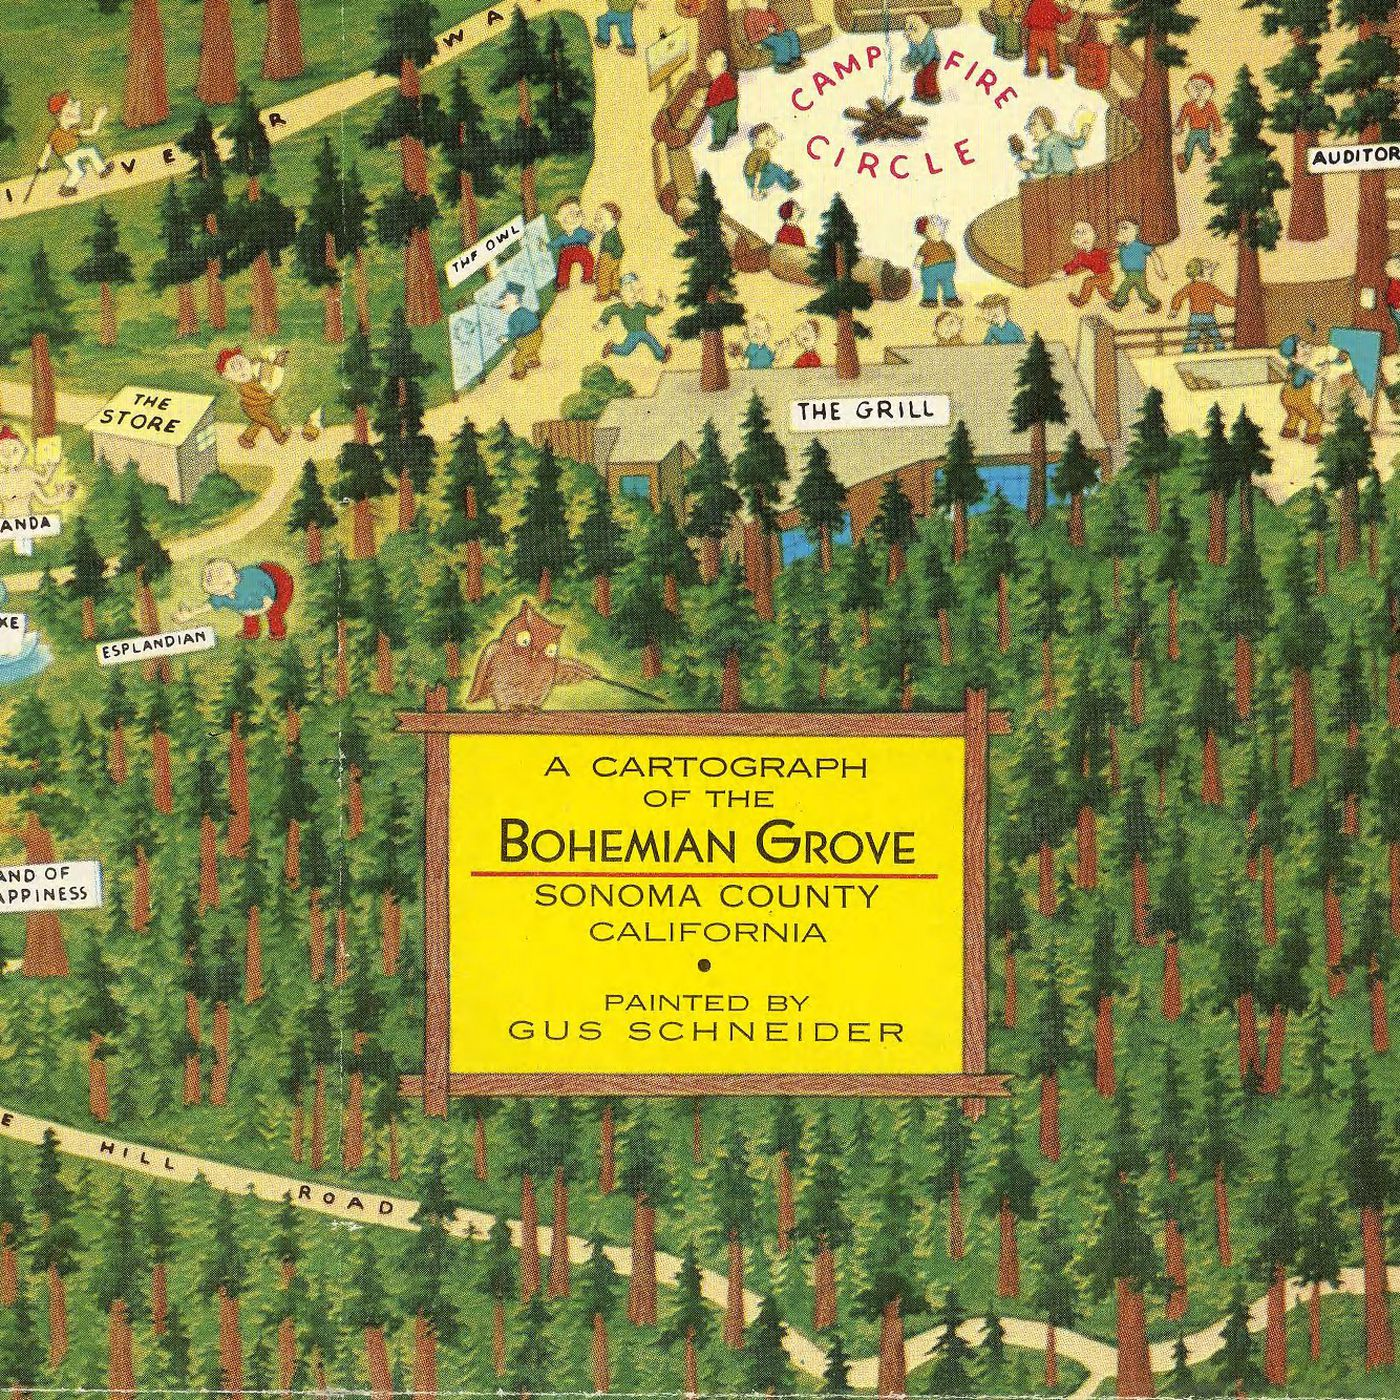 A map of Bohemian Grove, the place where masters of the ... Illuminati Map Of Usa on earth map of usa, isis map of usa, risk map of usa, hollywood map of usa, future navy map of usa, agenda 21 map of usa, bigfoot map of usa, economy map of usa, freemason map of usa, the new world order map of usa, un map of usa, religion map of usa, facebook map of usa, prophecy map of usa, death map of usa, health map of usa, icon map of usa, food map of usa, revolution map of usa, power grid map of usa,